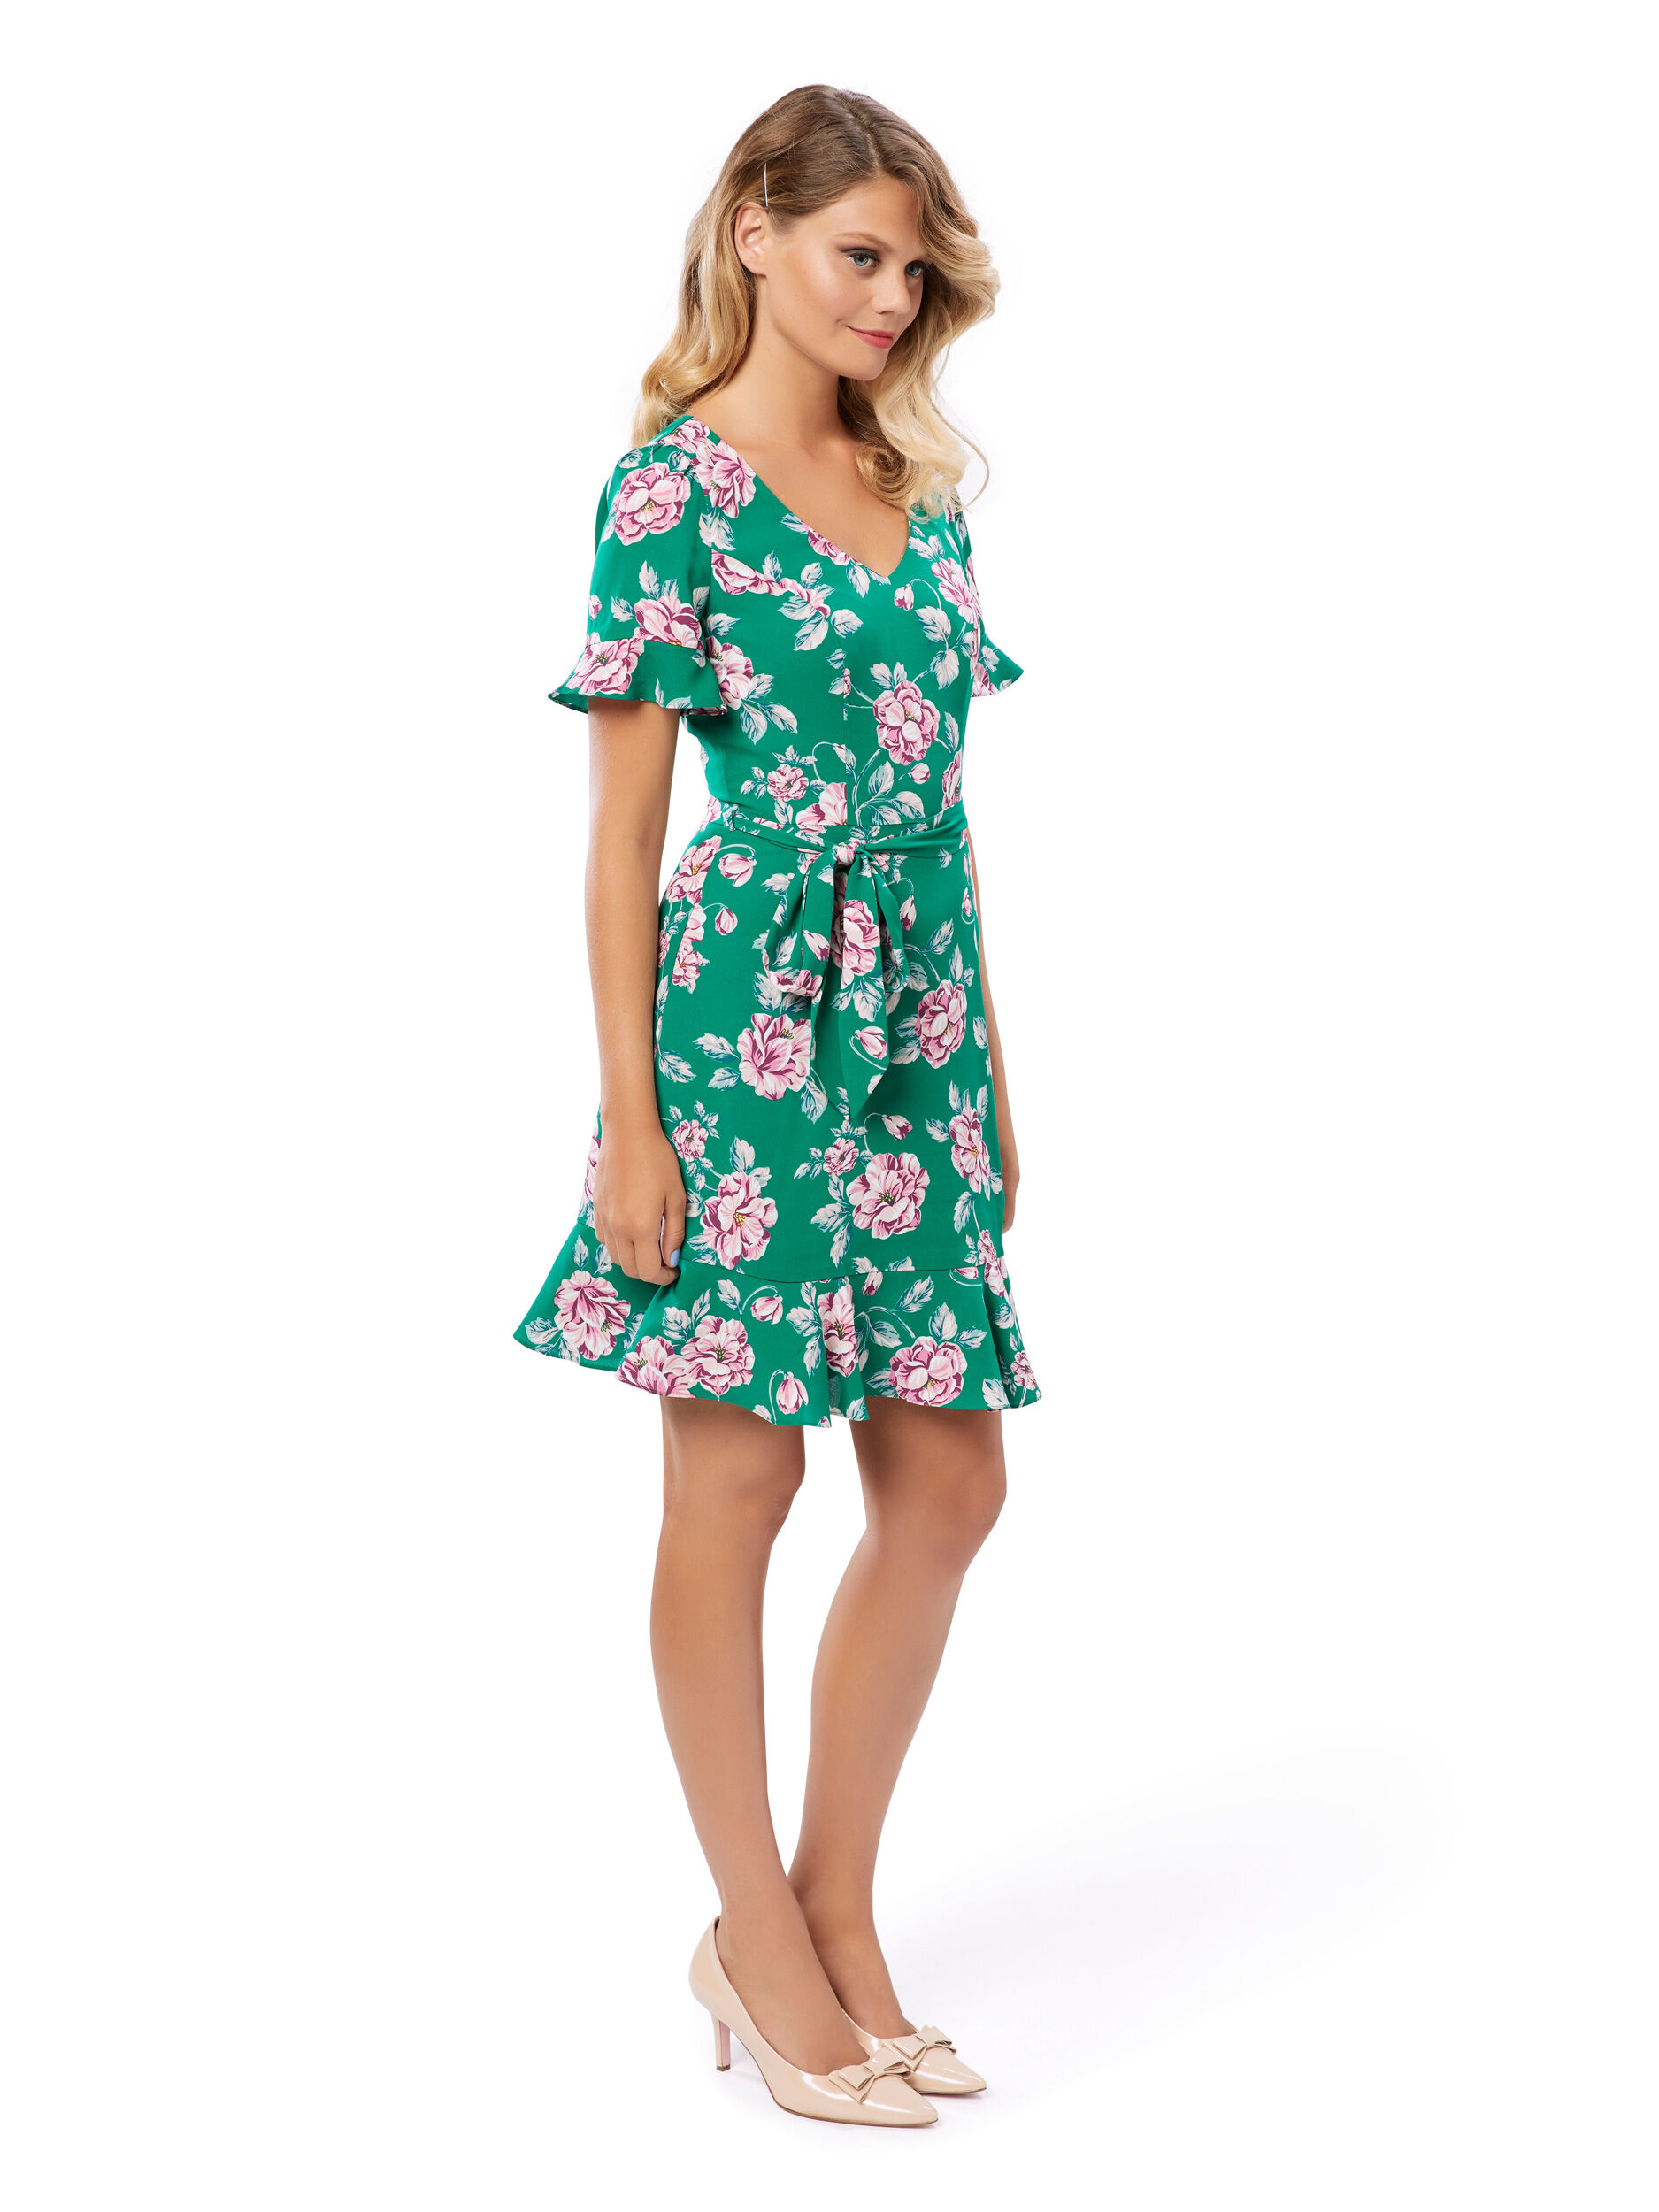 Blissful Bloom Dress